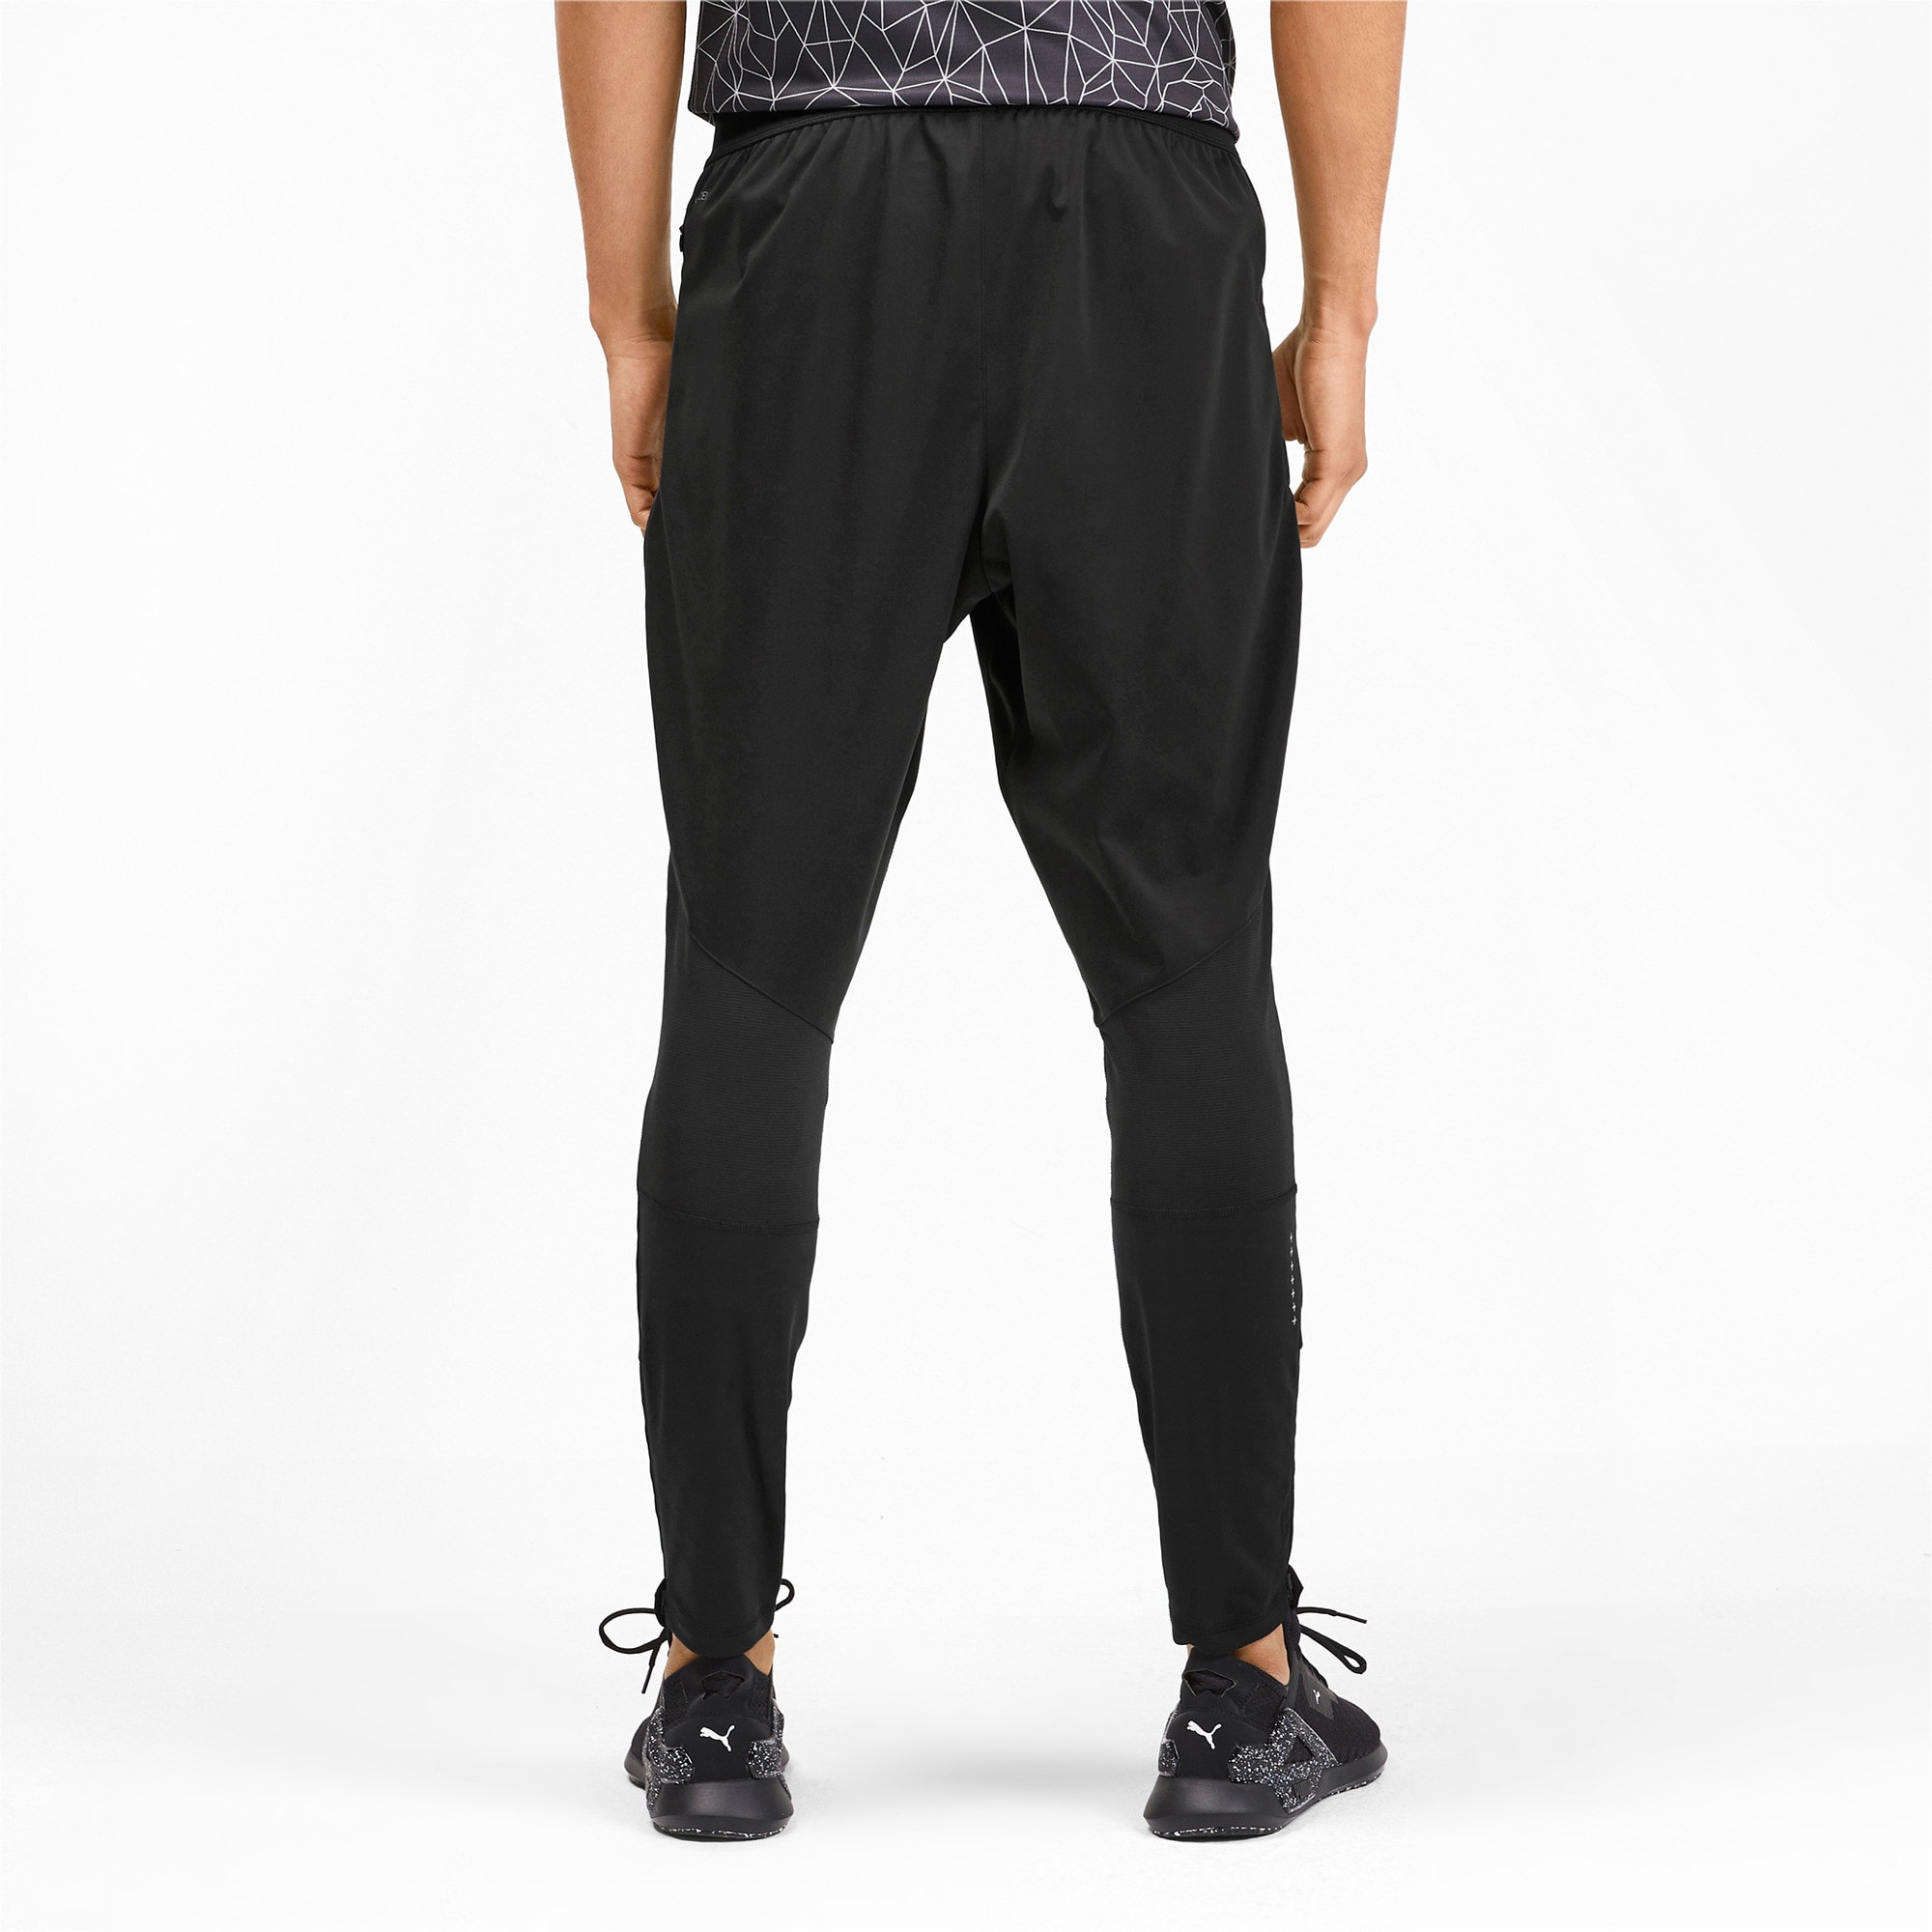 Thumbnail 2 of Get Fast Excite Herren Running Gewebte Hose, Puma Black, medium